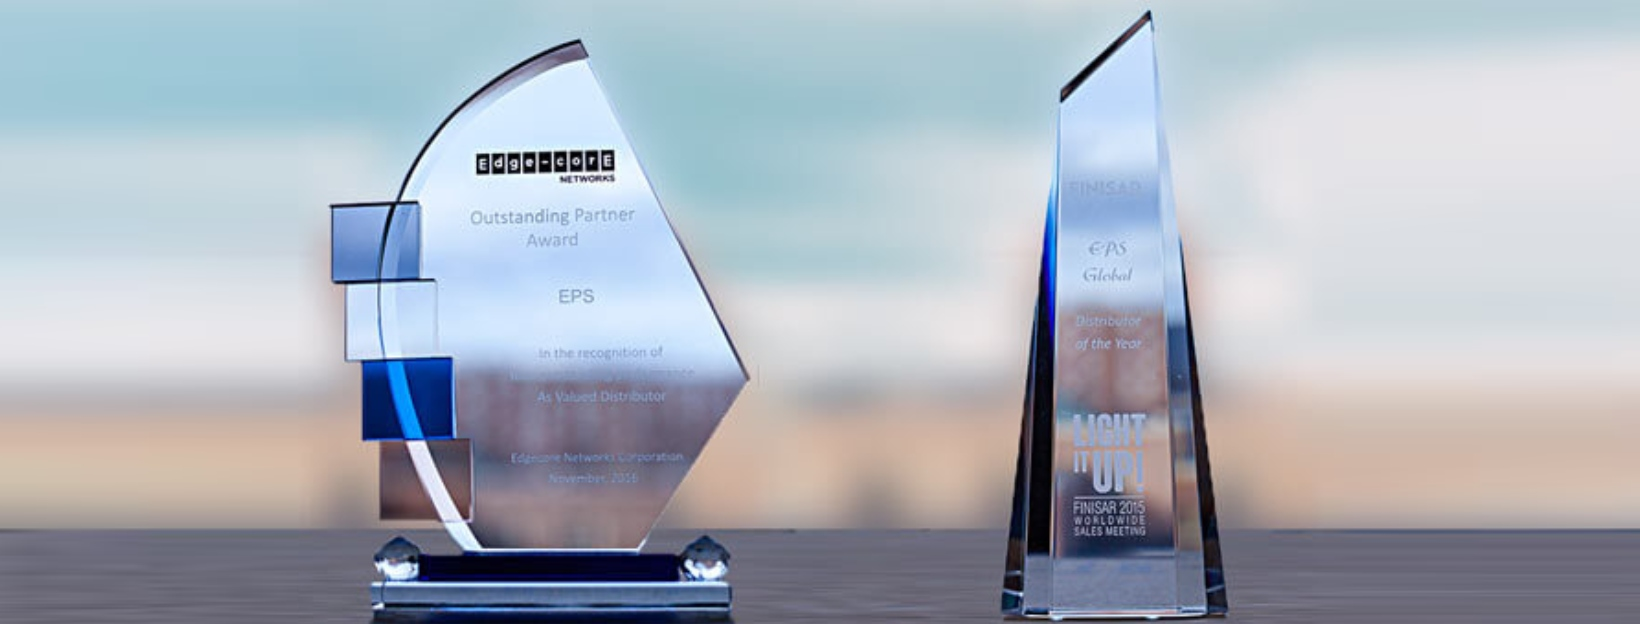 EPS Global Wins Outstanding Partner and Global Distributor of the Year Accolades from Edgecore Networks and Finisar